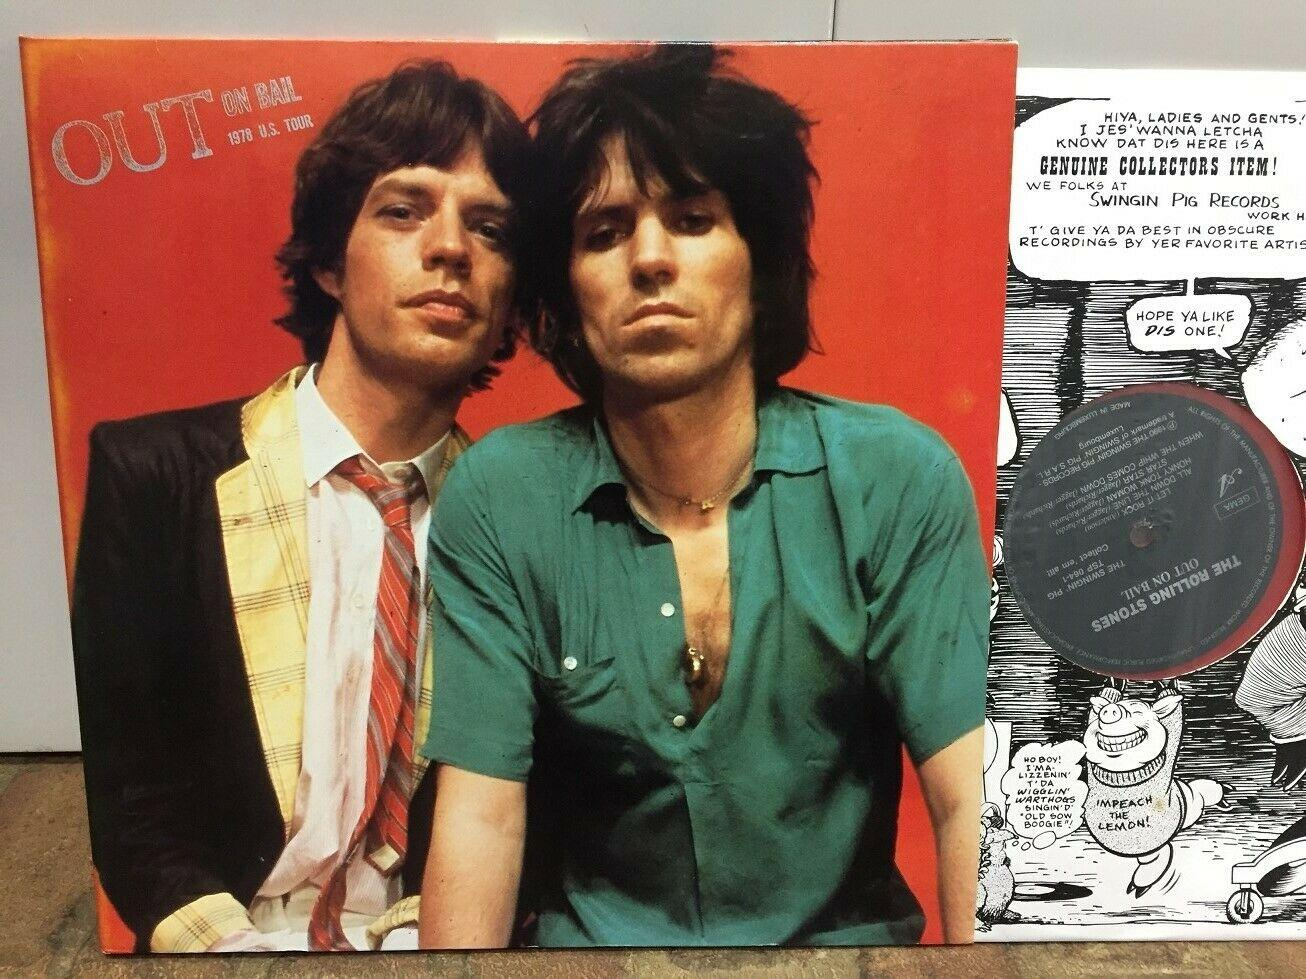 Rolling Stones OUT ON BAIL - TSP 2LP Color Wax  Clean Wax  Swingin' Pig